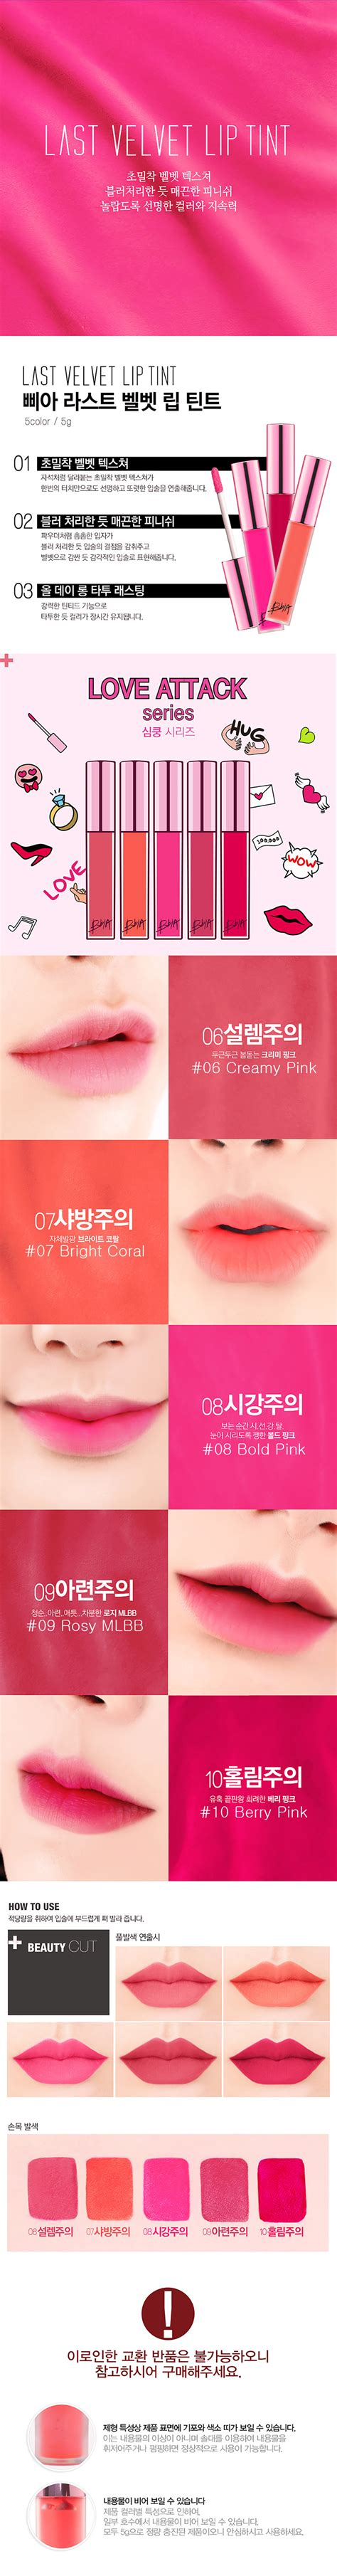 Bbia Last Velvet Lip Tint 2 bbia last velvet lip tint new color 5g